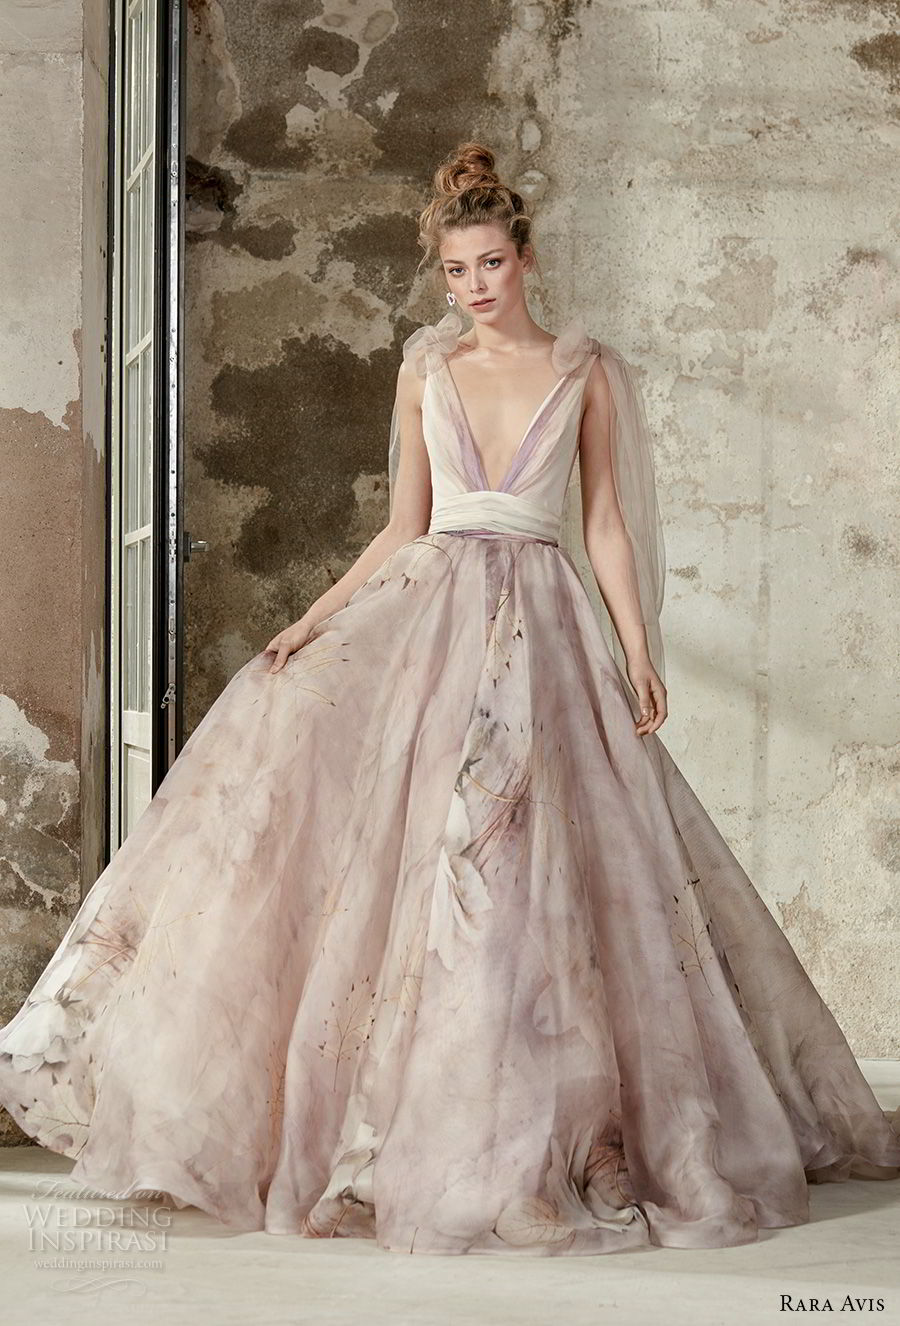 rara avis 2017 bridal sleeveless deep v neck unembellished floral printed romantic pastel purple a line wedding dress open back medium train (7) mv